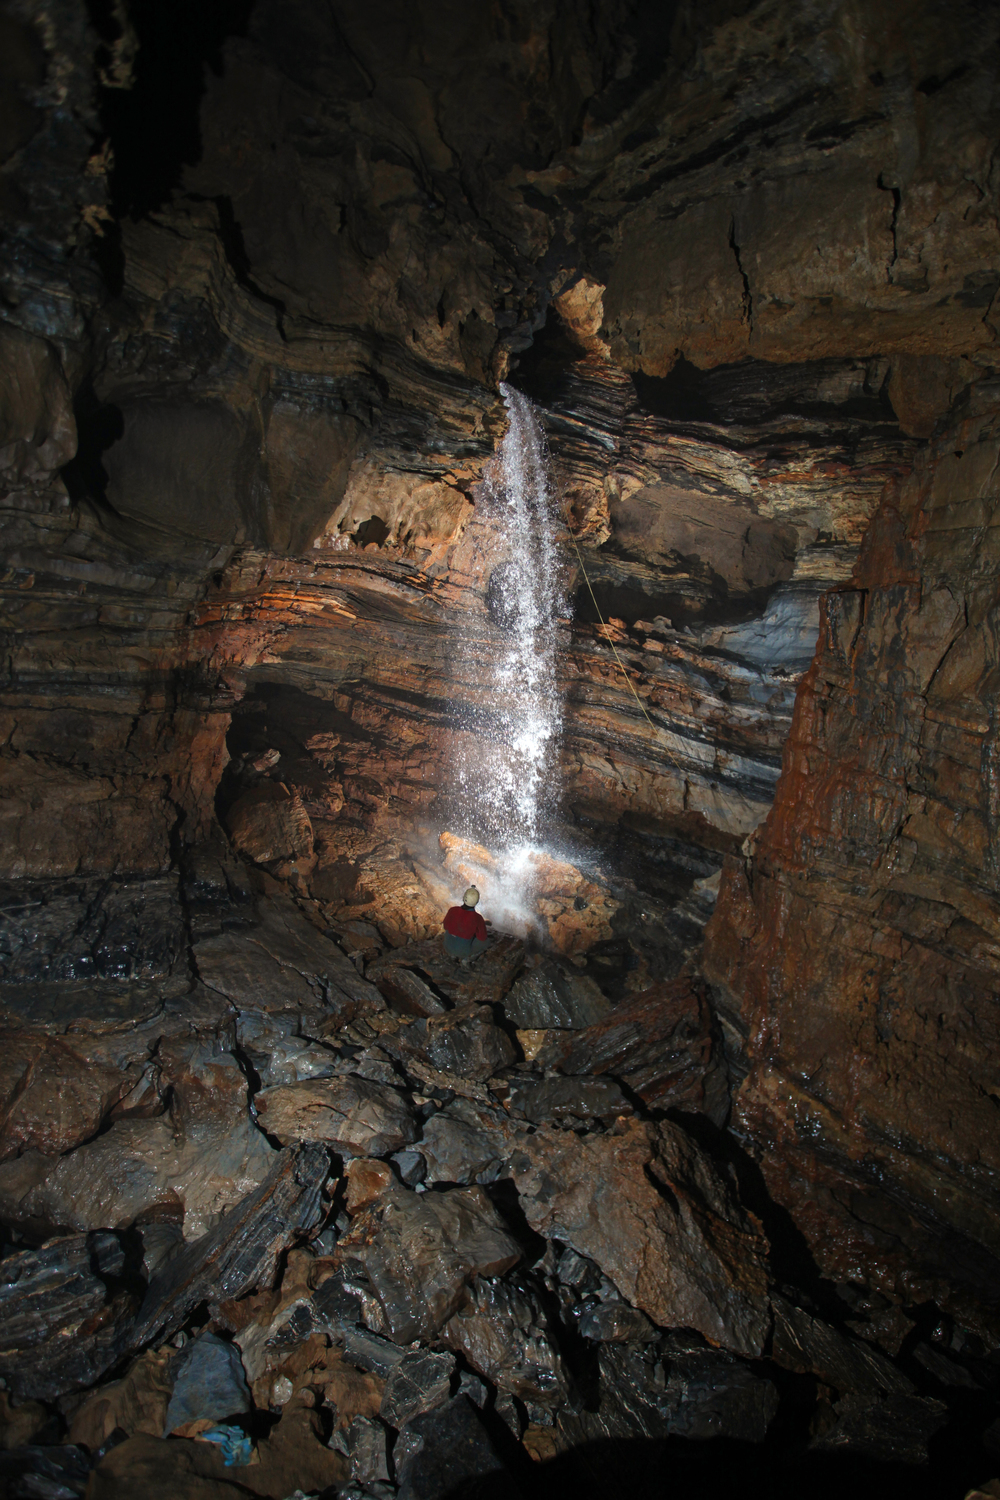 The junction room of Li Nita and Sótano de San Agustín, a connection that established the first 1000-meter deep cave outside of Europe. It is also the point of access for upstream exploration in Red Ball Canyon.